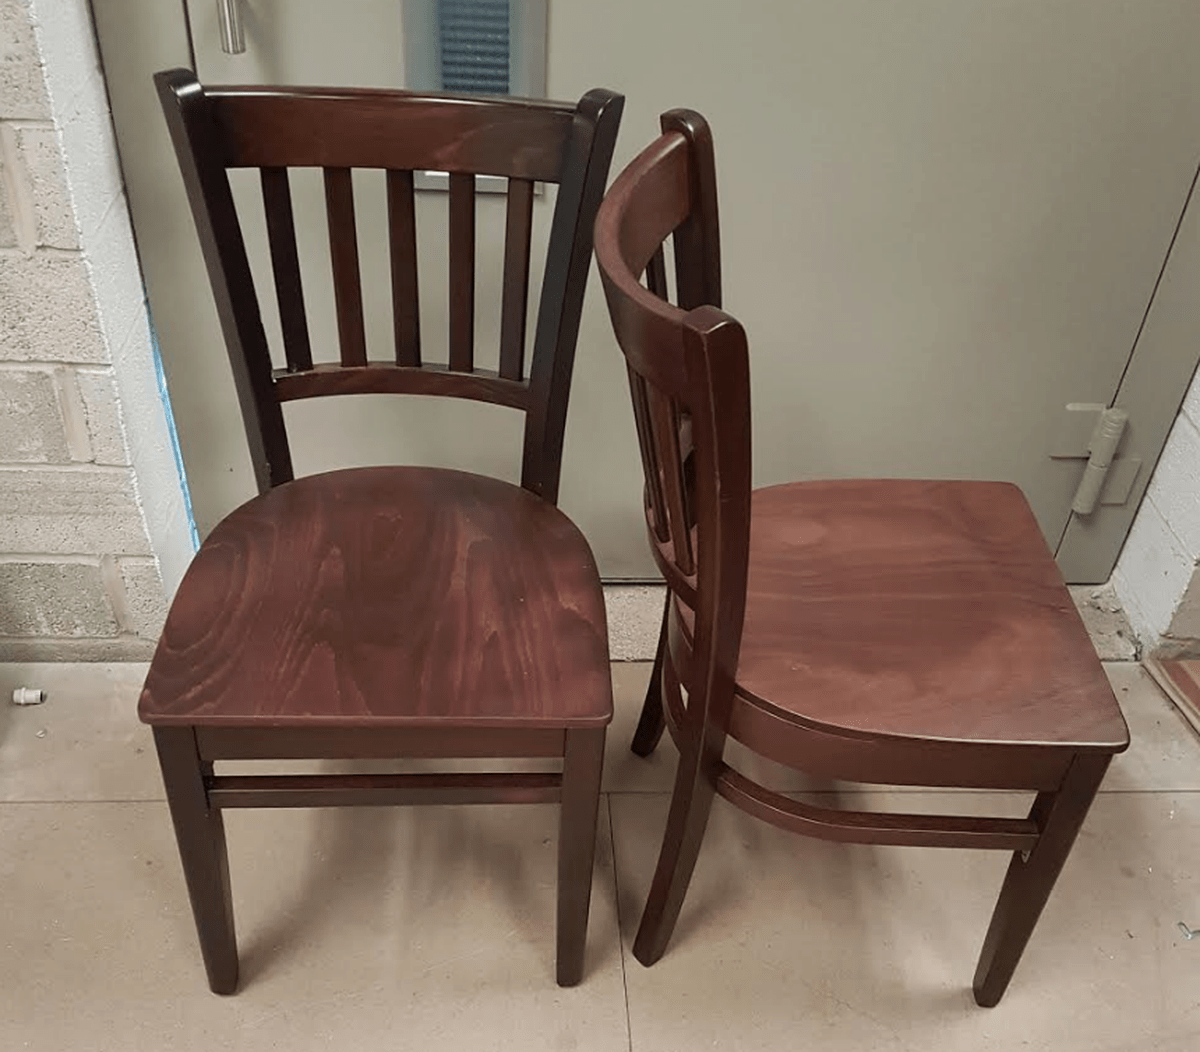 Cafe Chairs For Sale Secondhand Chairs And Tables Restaurant Chairs 29x New